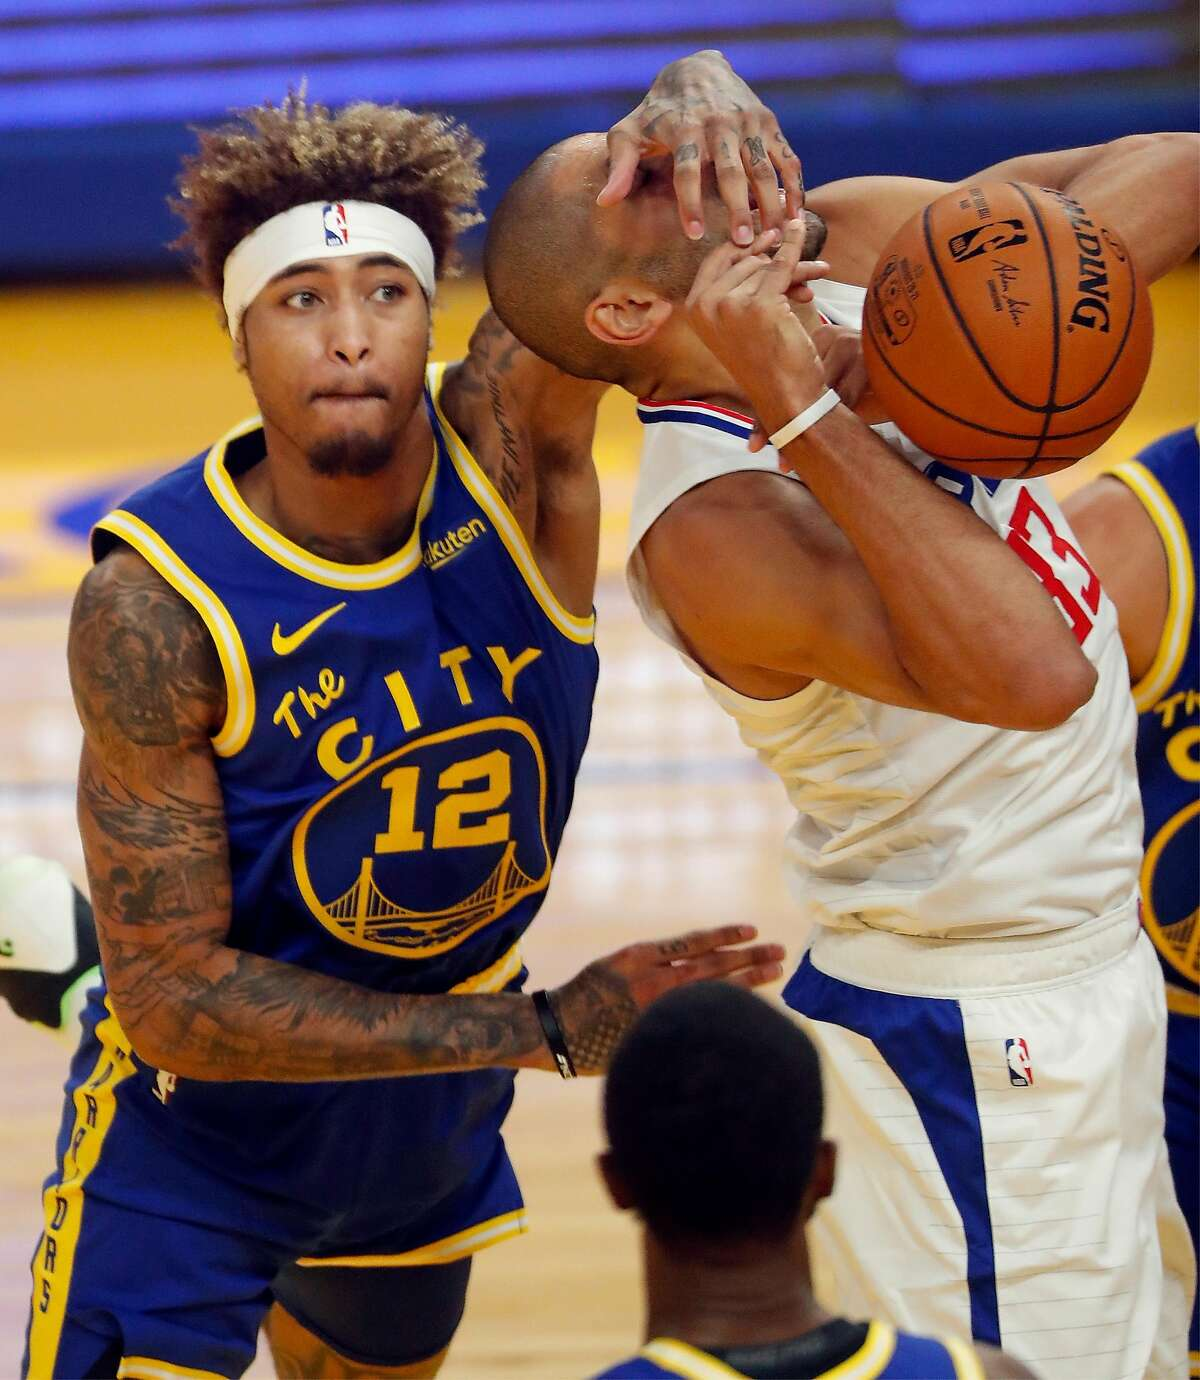 Golden State Warriors' Kelly Oubre, Jr. fouls Los Angeles Clippers' Nicolas Batum in 1st quarter during NBA game at Chase Center in San Francisco, Calif., on Wednesday, January 6, 2021.